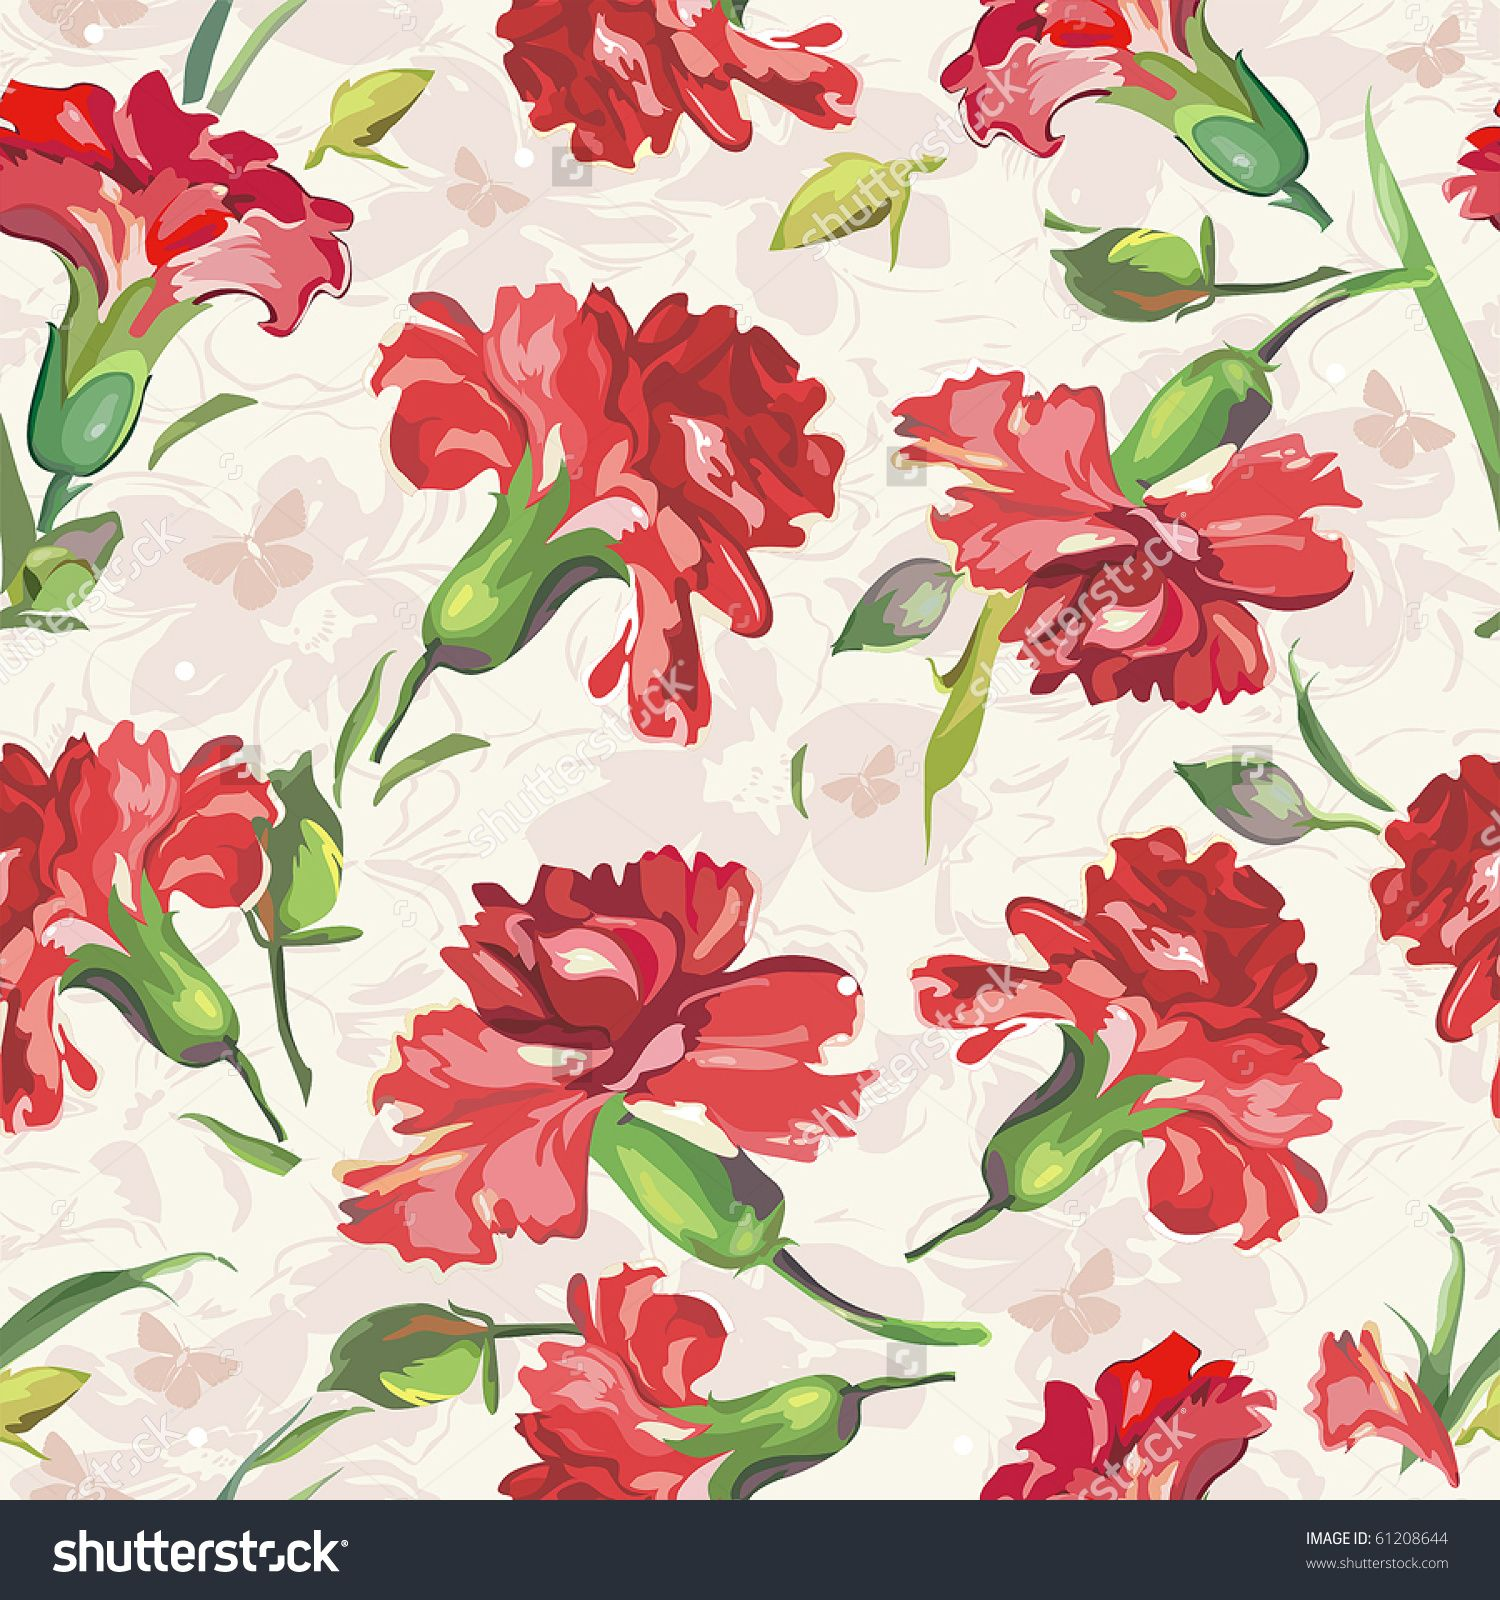 Red Carnations on floral background with butterflies